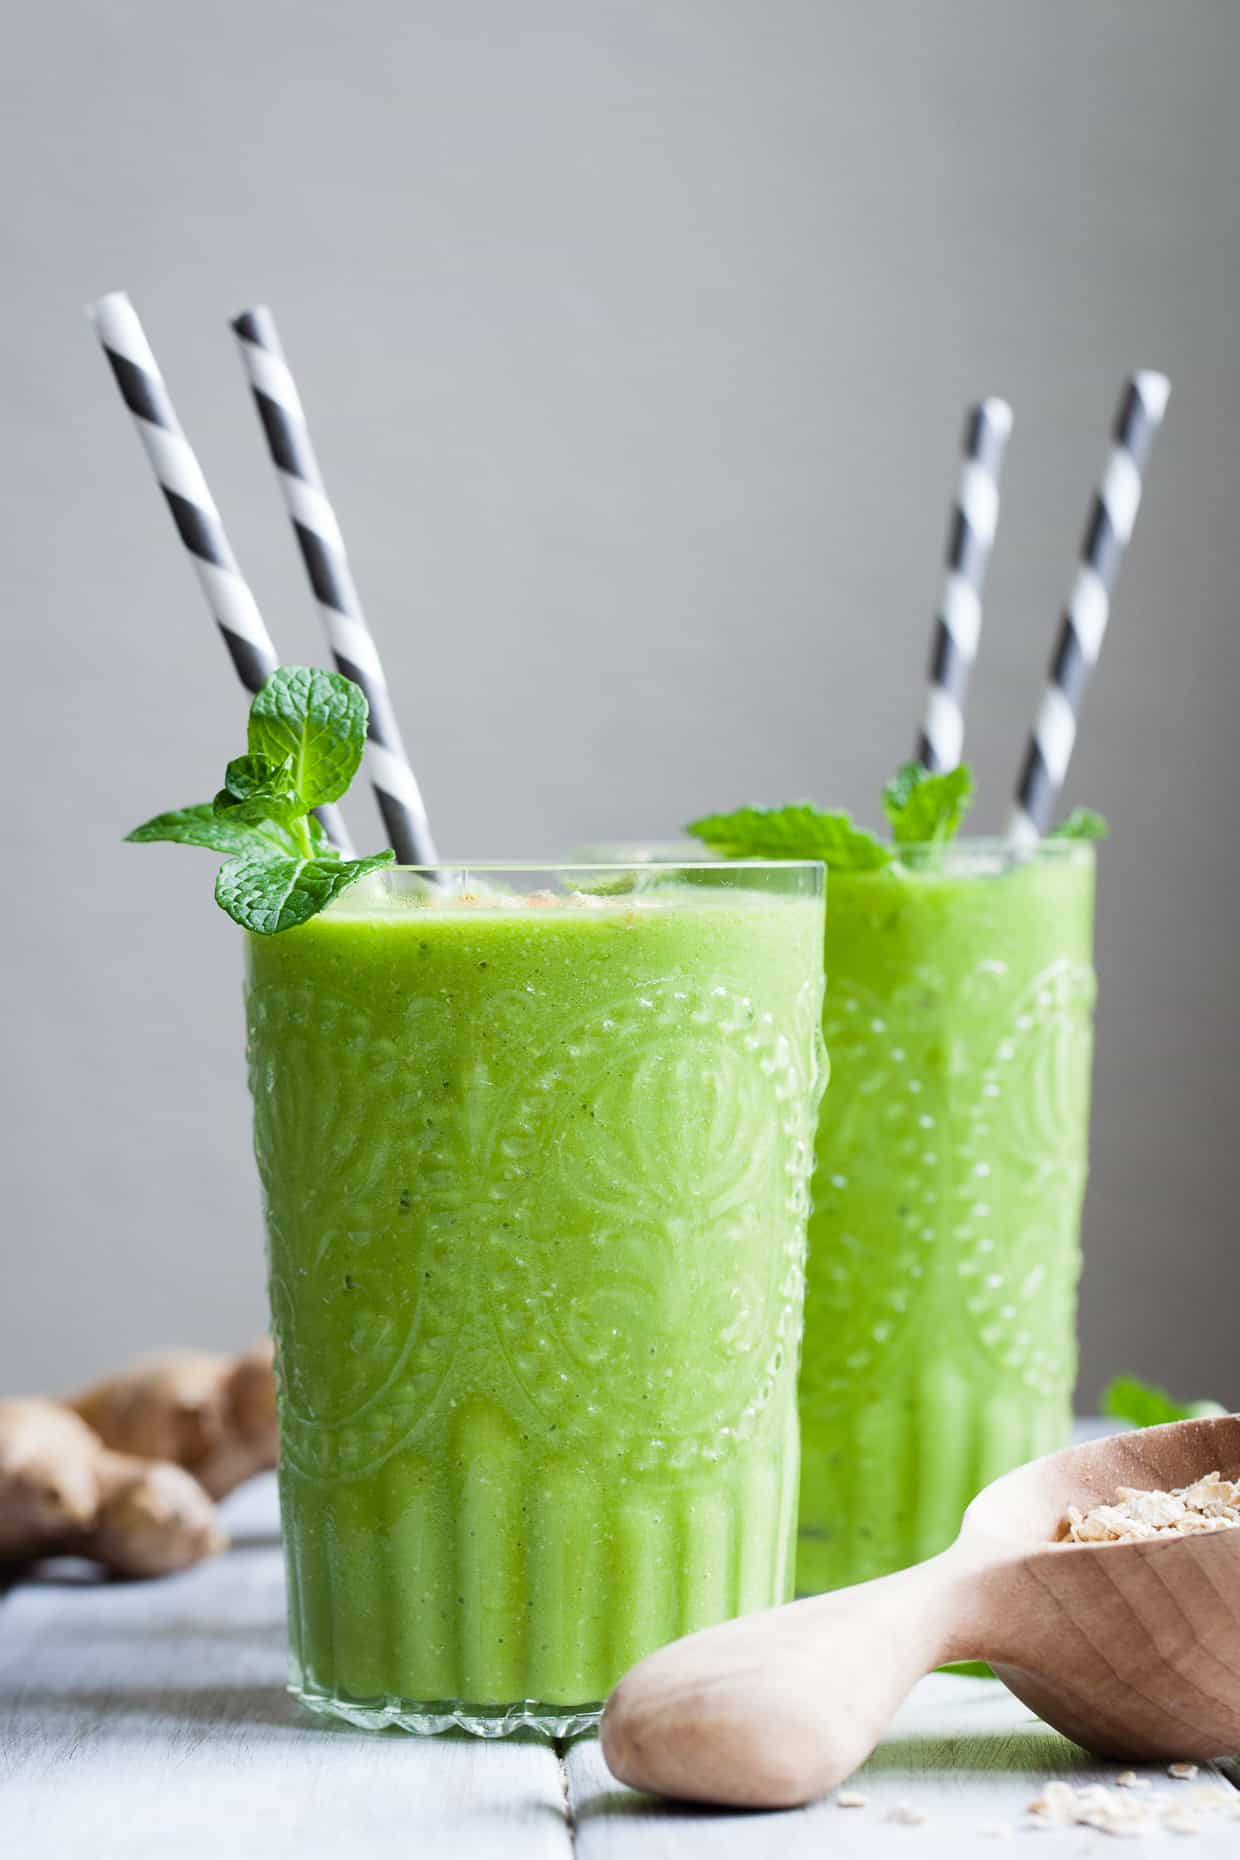 Sweet Zing Ginger Oatmeal Green Smoothie